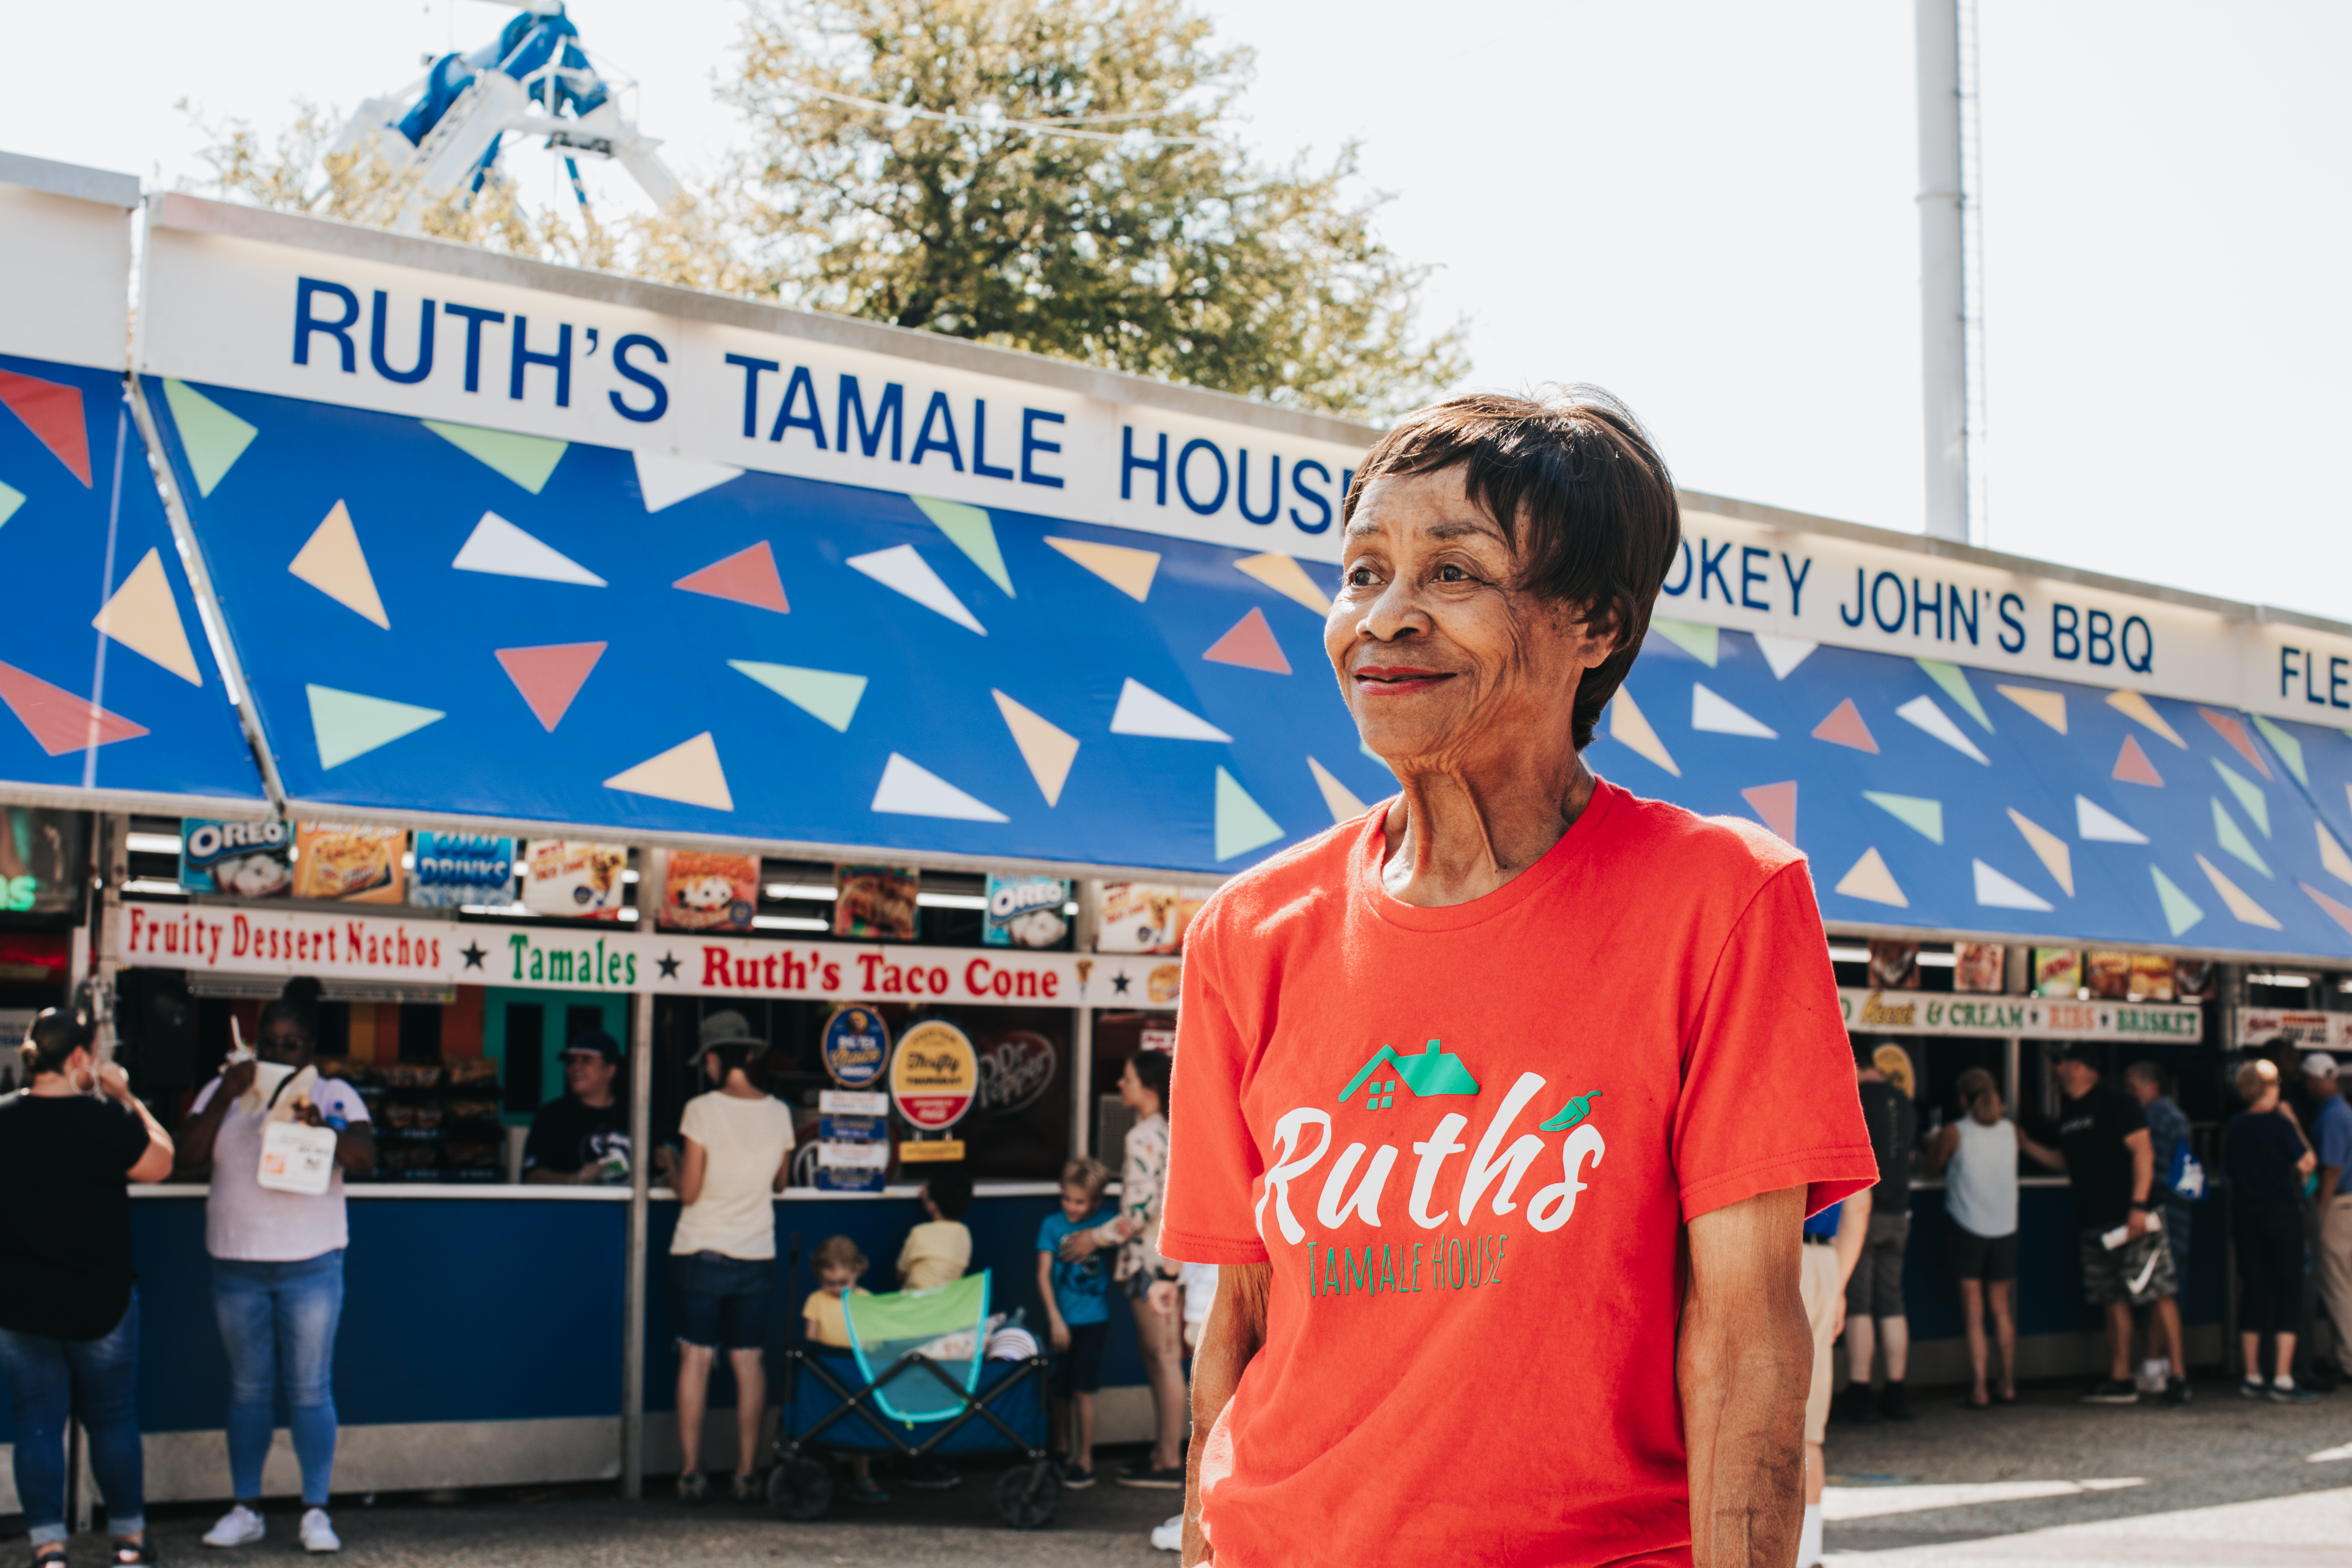 Ruth Hauntz smiles while standing in front of her Ruth's Tamale House stand.